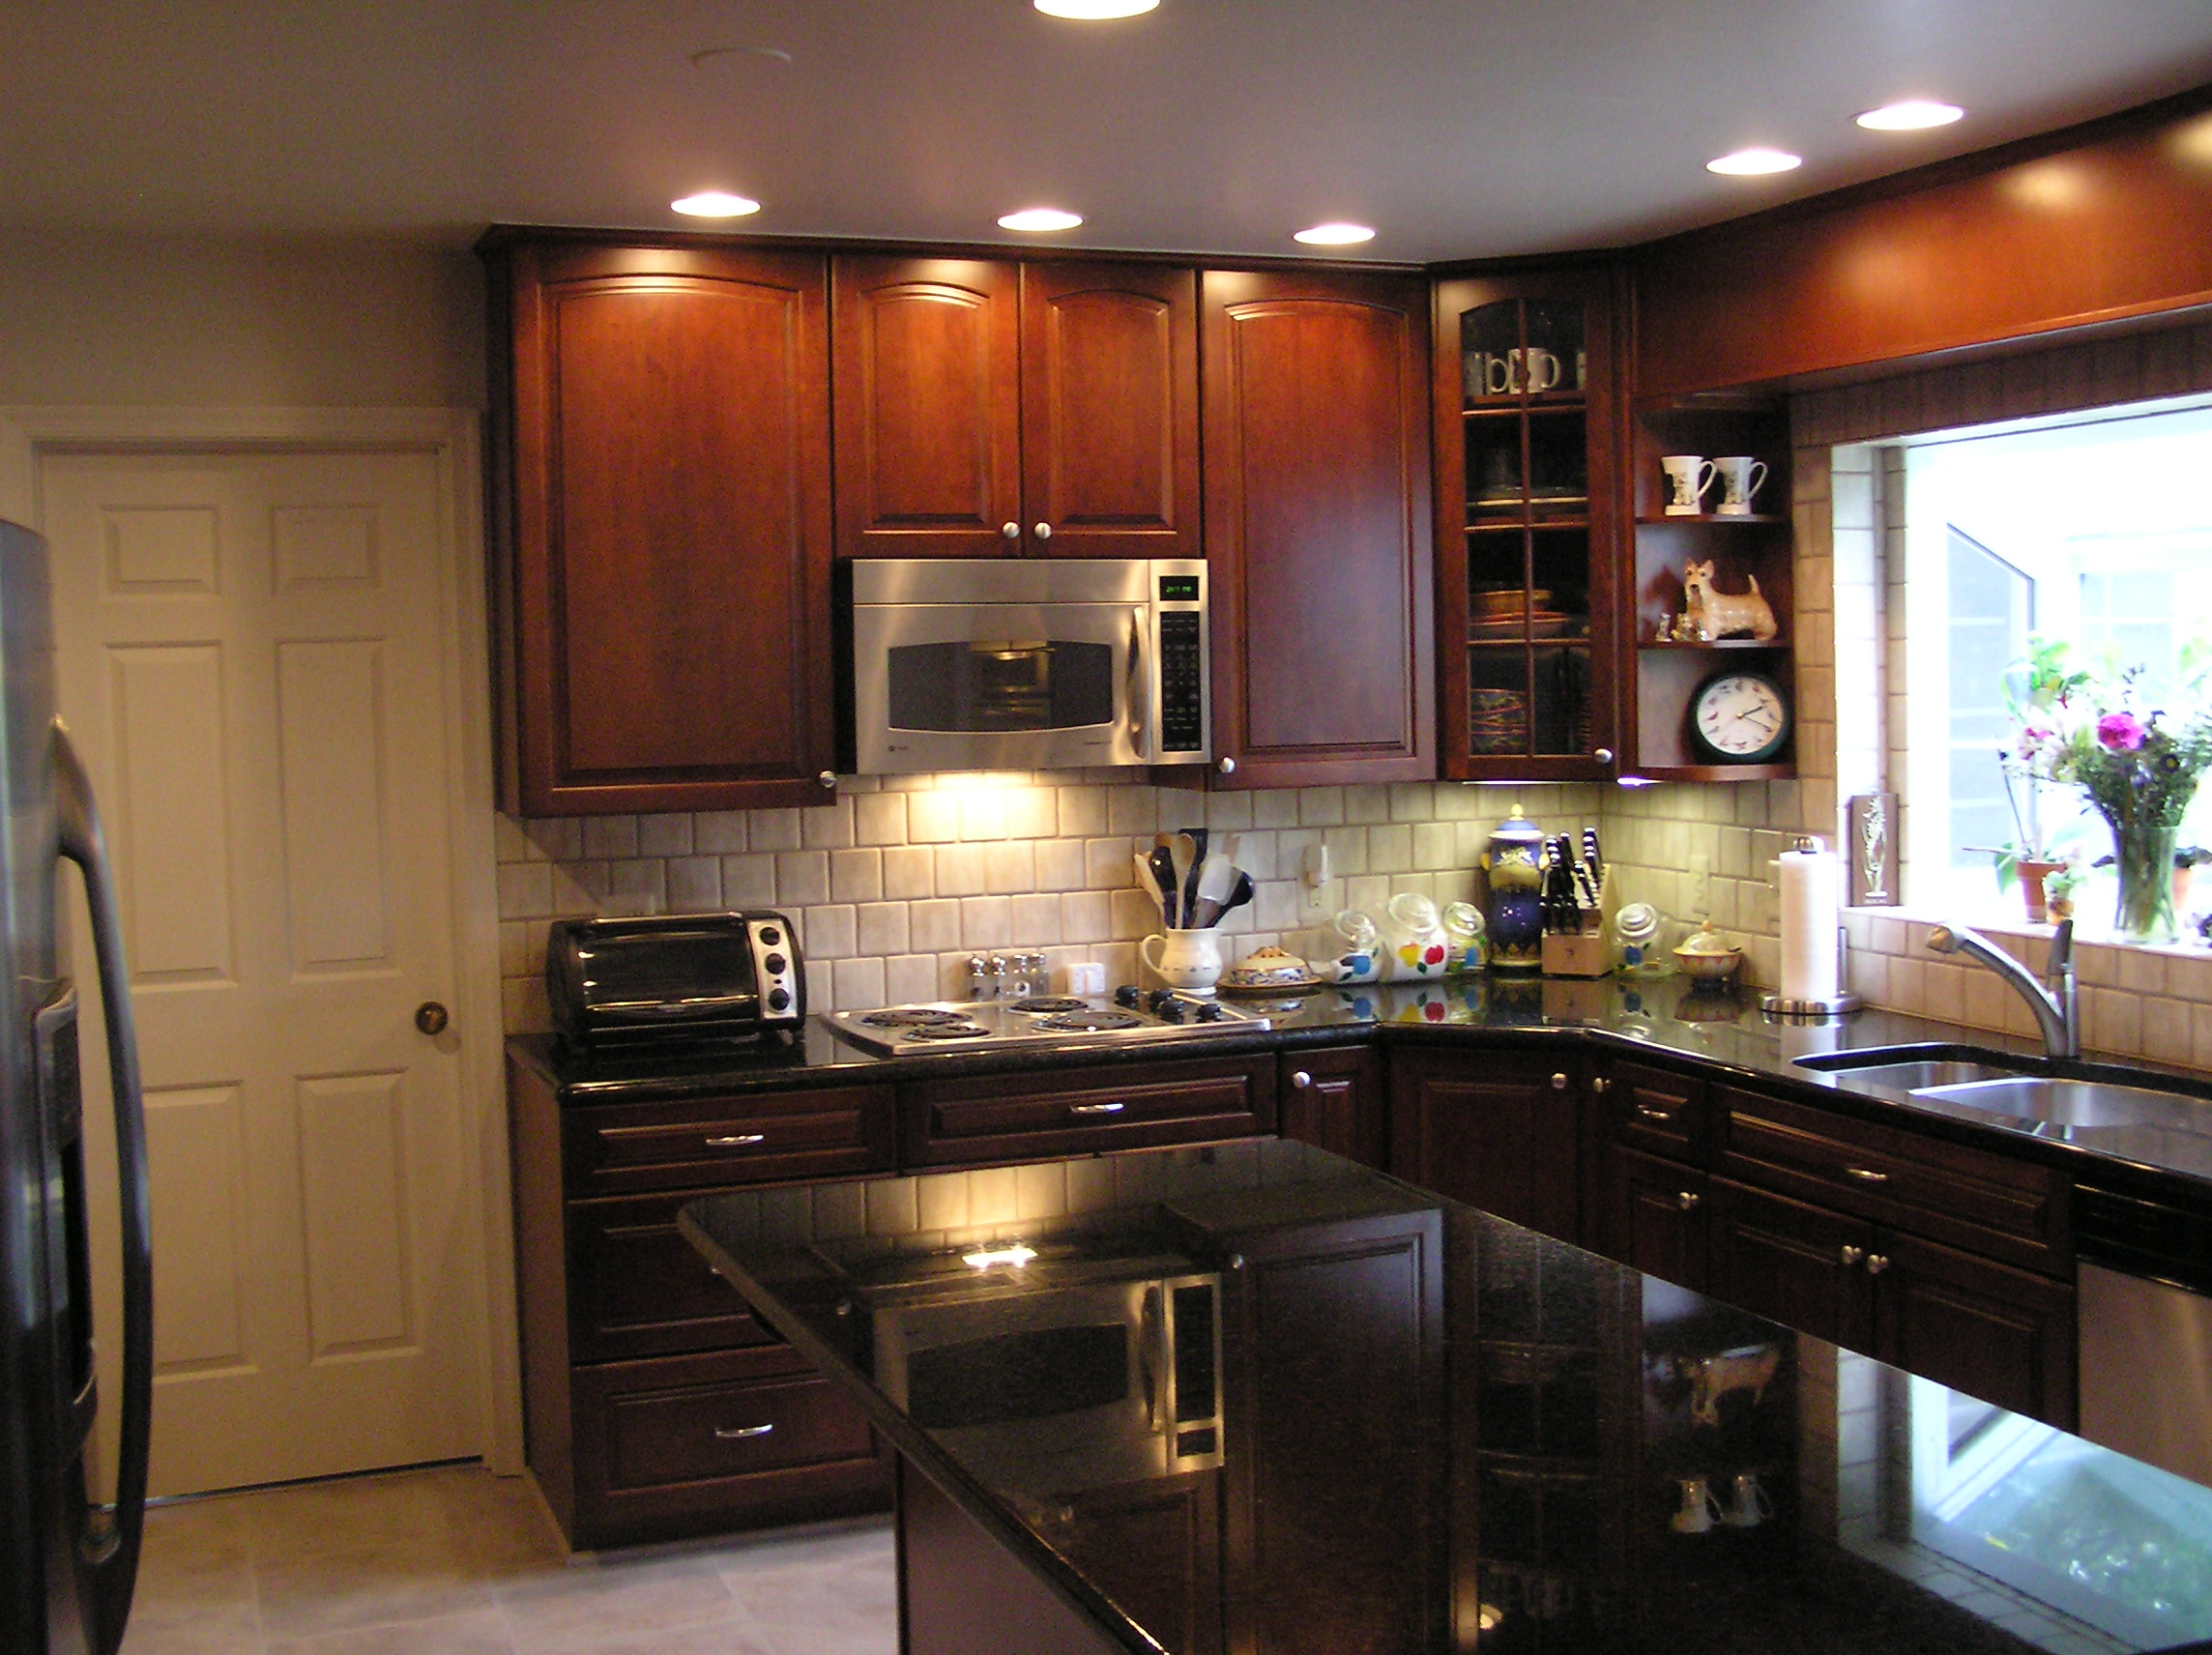 Kitchen Remodeling Tips - WA PaintWA Paint